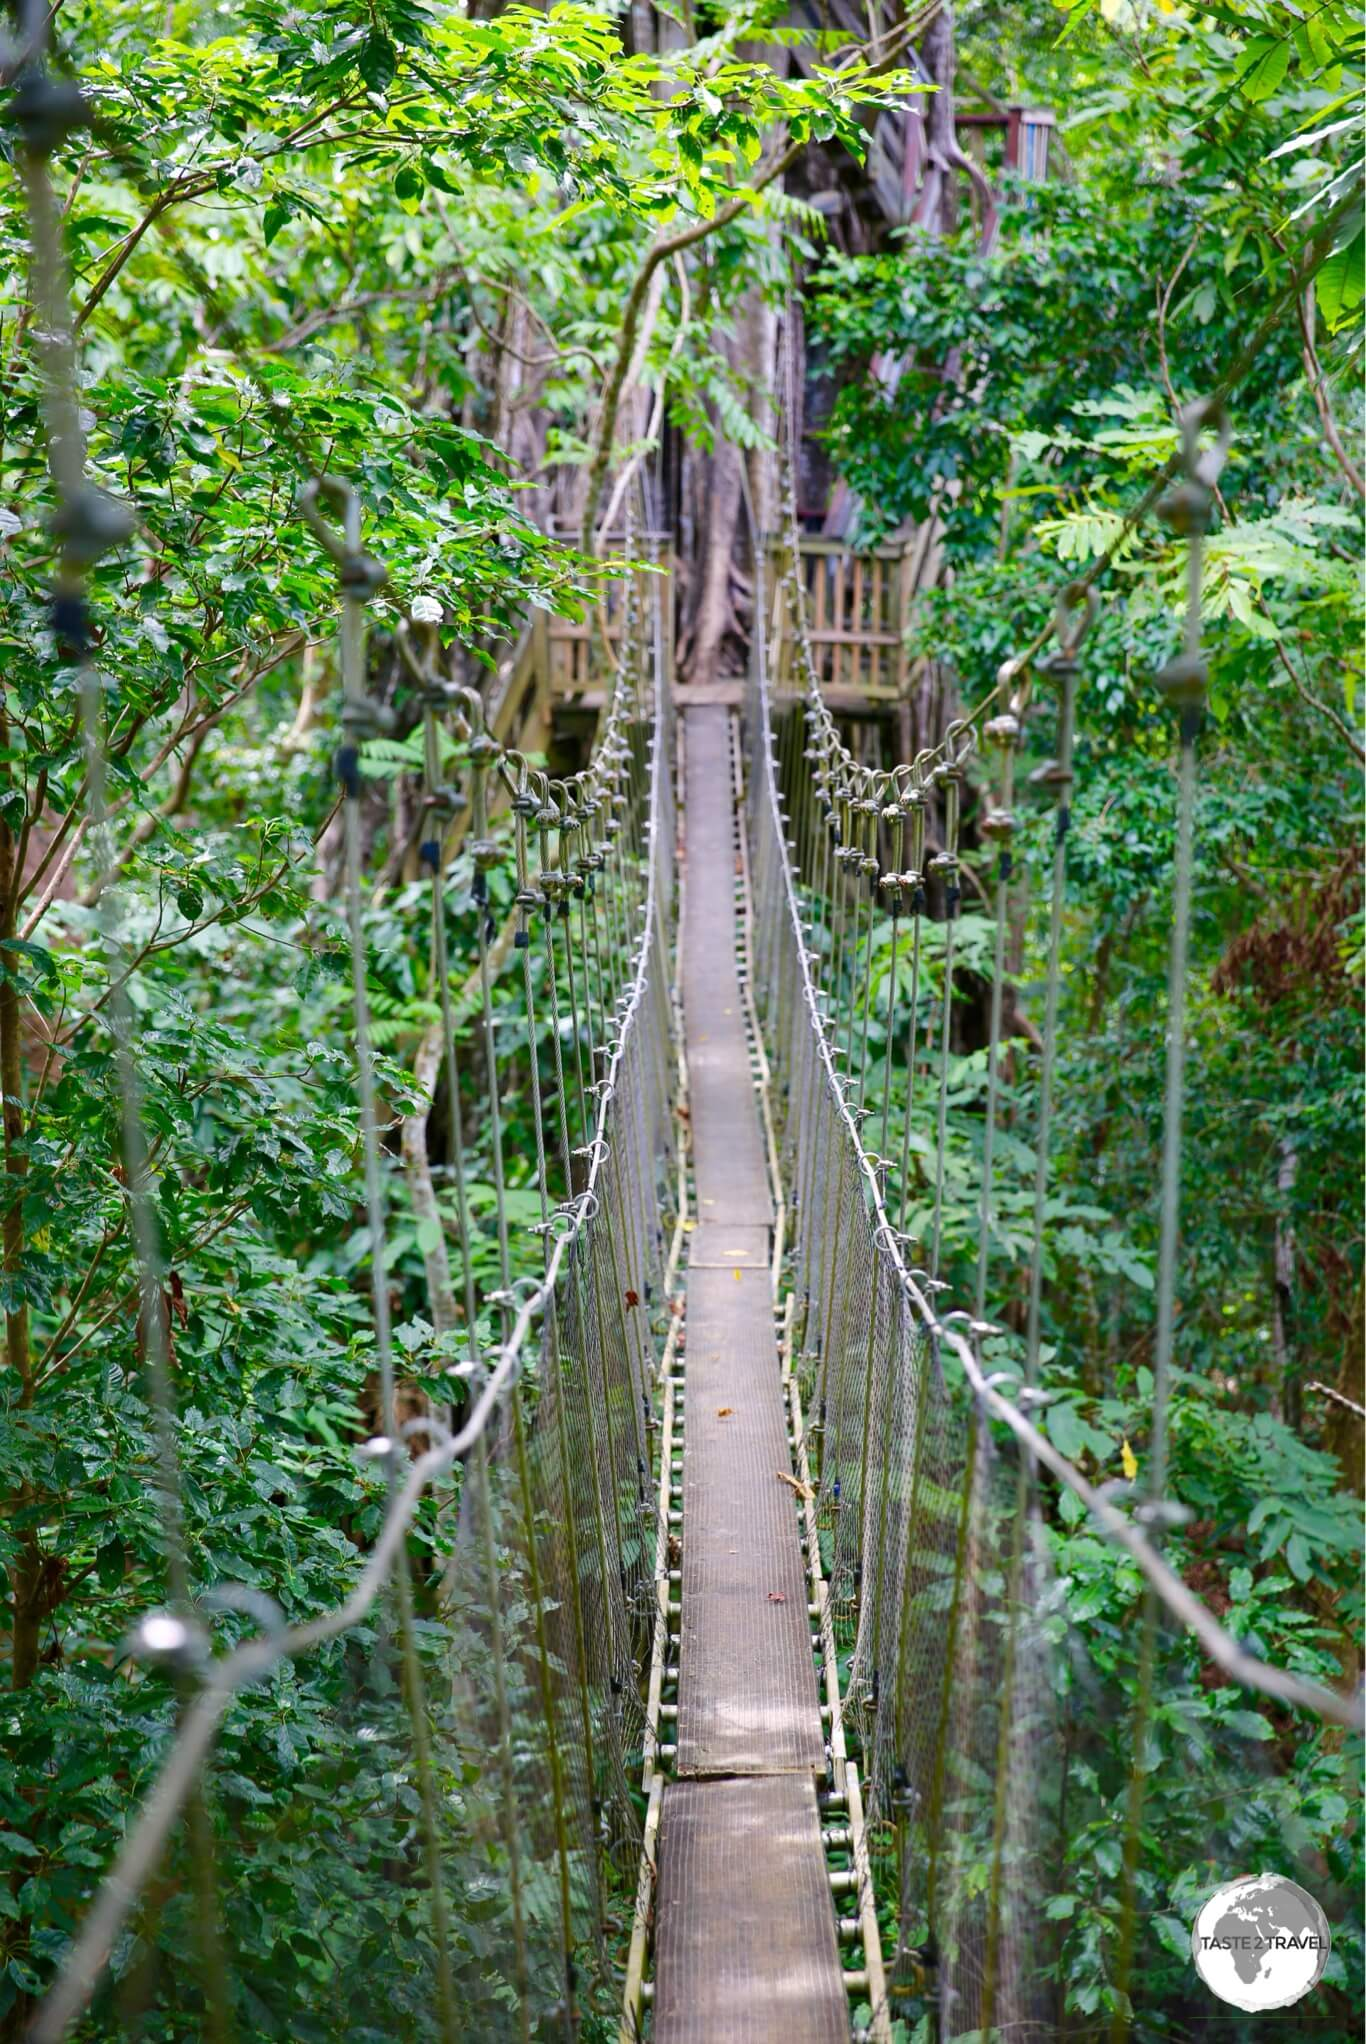 Suspended 40 metres above the rainforest floor, the shaky Canopy Walkway is unique in Samoa and can be challenging for those with a fear of heights.